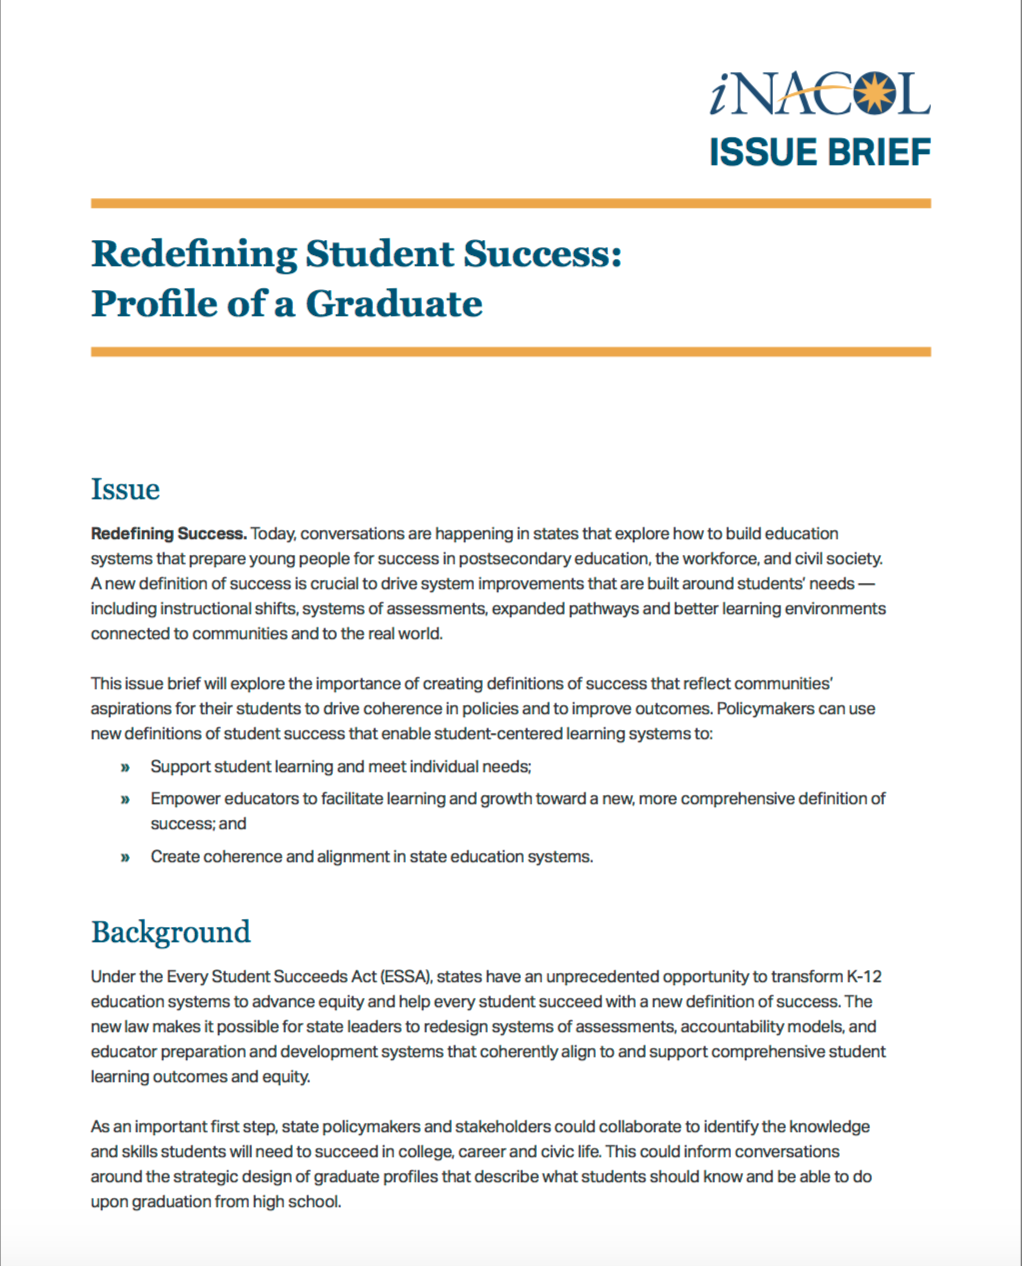 Redefining Student Success Profile of a Graduate